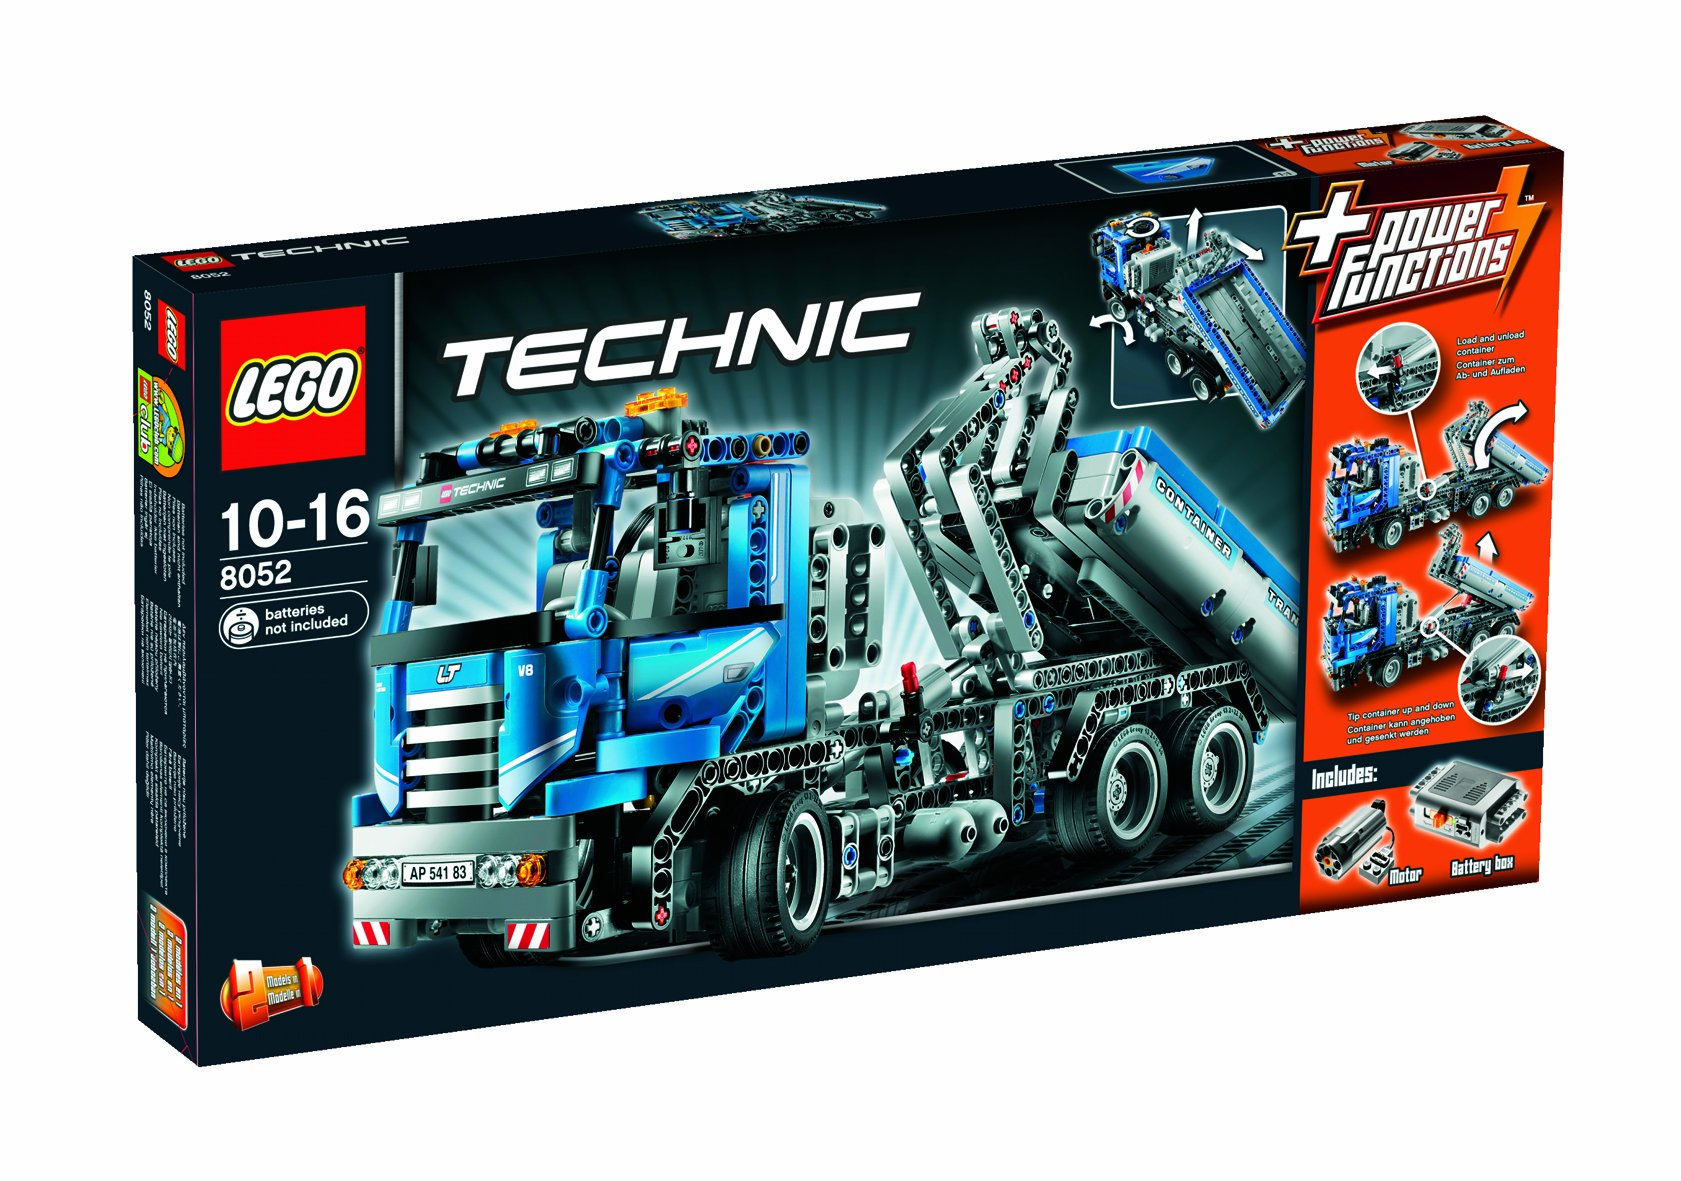 lego technic 8052 un camion conteneur transformable en camion benne. Black Bedroom Furniture Sets. Home Design Ideas